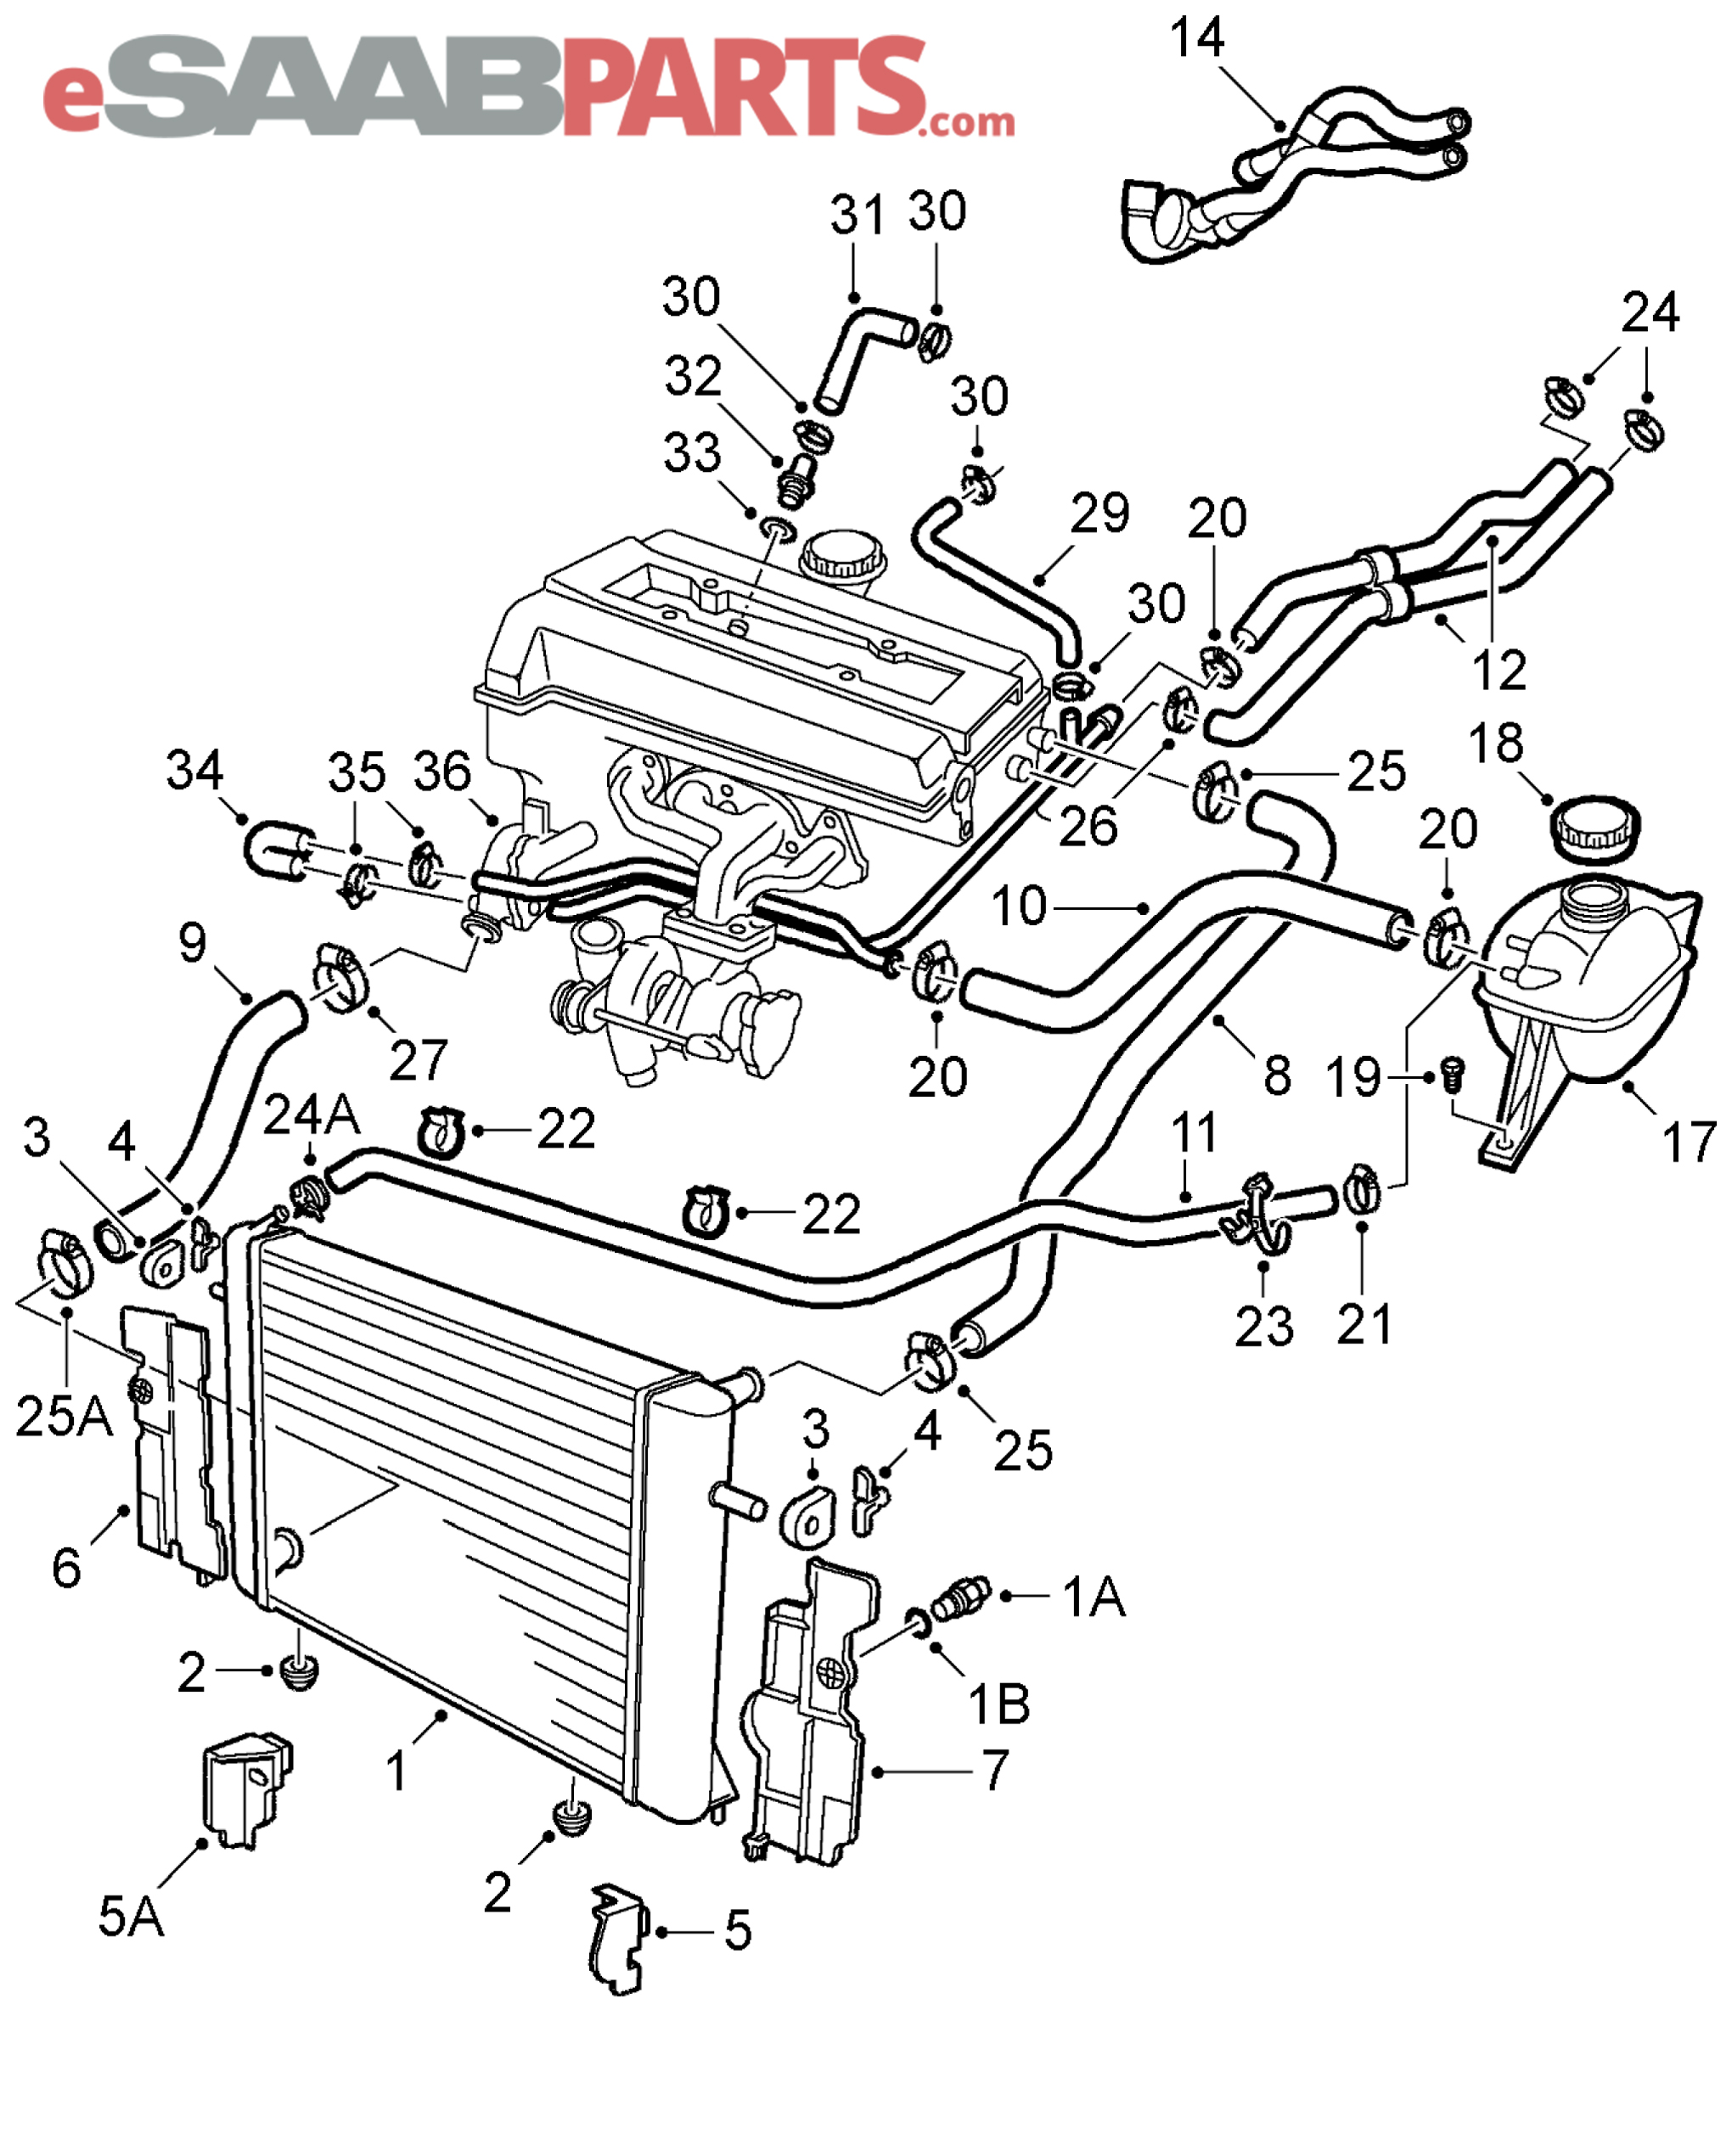 Saab 9 3 Cooling Parts Diagram. Saab. Auto Parts Catalog